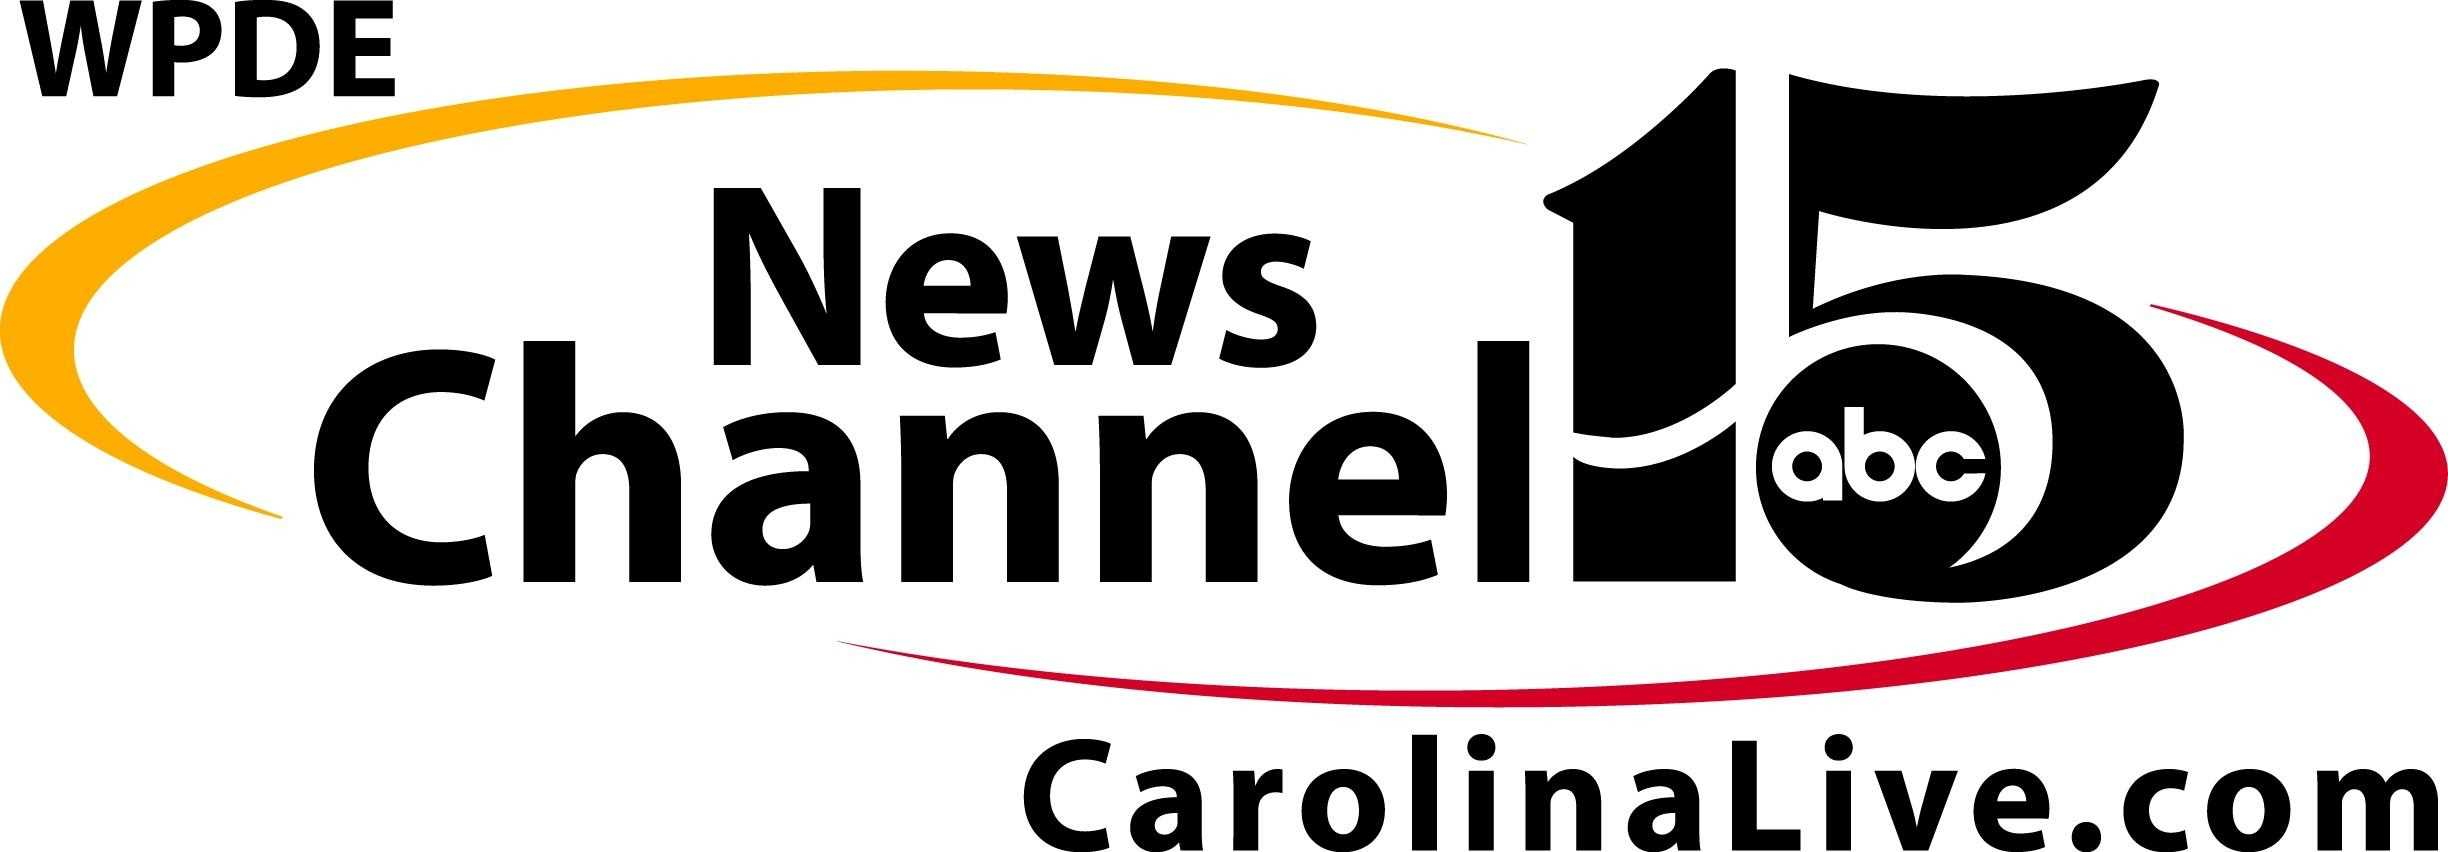 WPDE News Channel 15